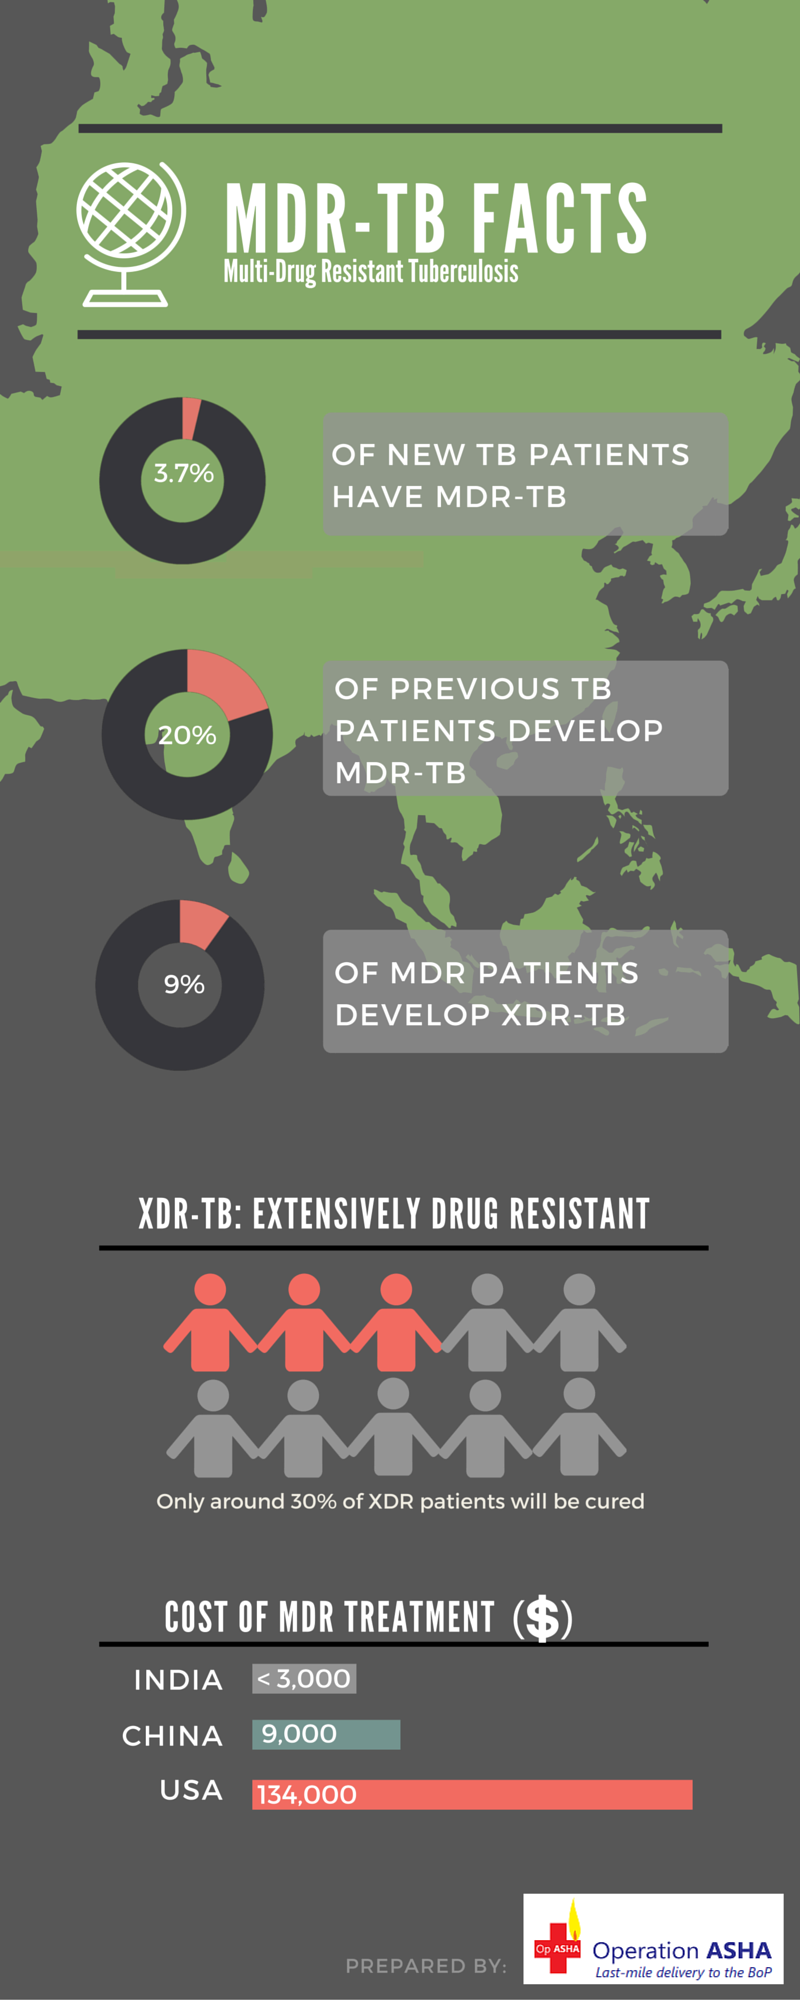 MDR-TB Facts